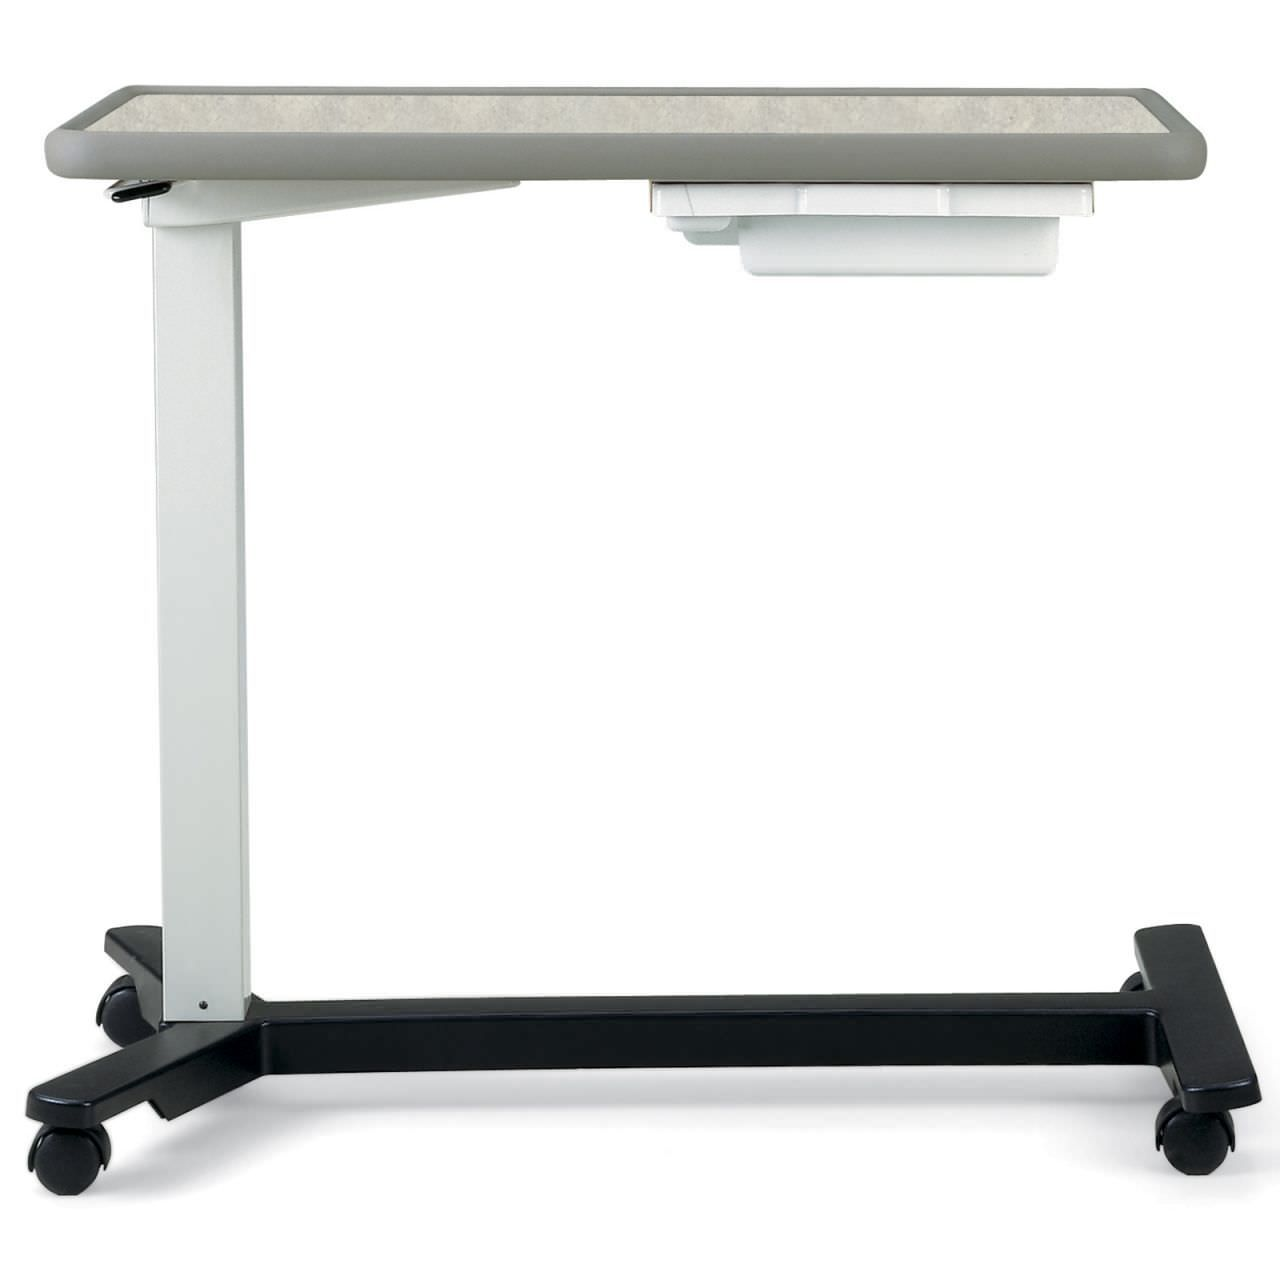 tru drawer care overbed tables award design stryker drawers bedside fit with products patient severalcolors stands table and en united furniture states pc winning furnitureobt